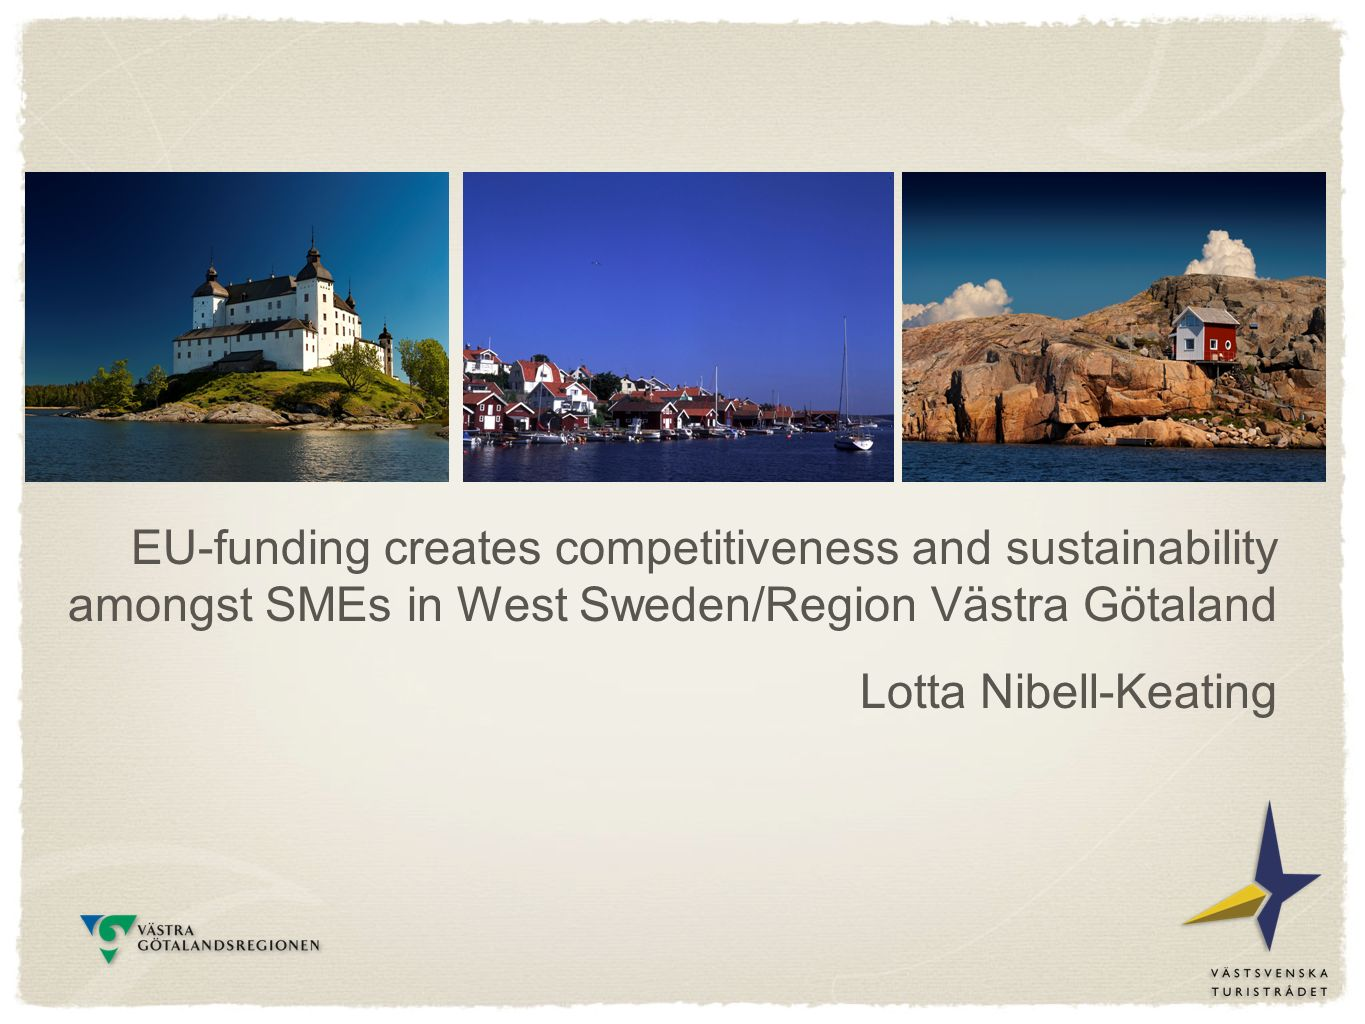 Eu Funding Creates Competitiveness And Sustainability Amongst Smes In West Sweden Region Vastra Gotaland Lotta Nibell Keating Ppt Download